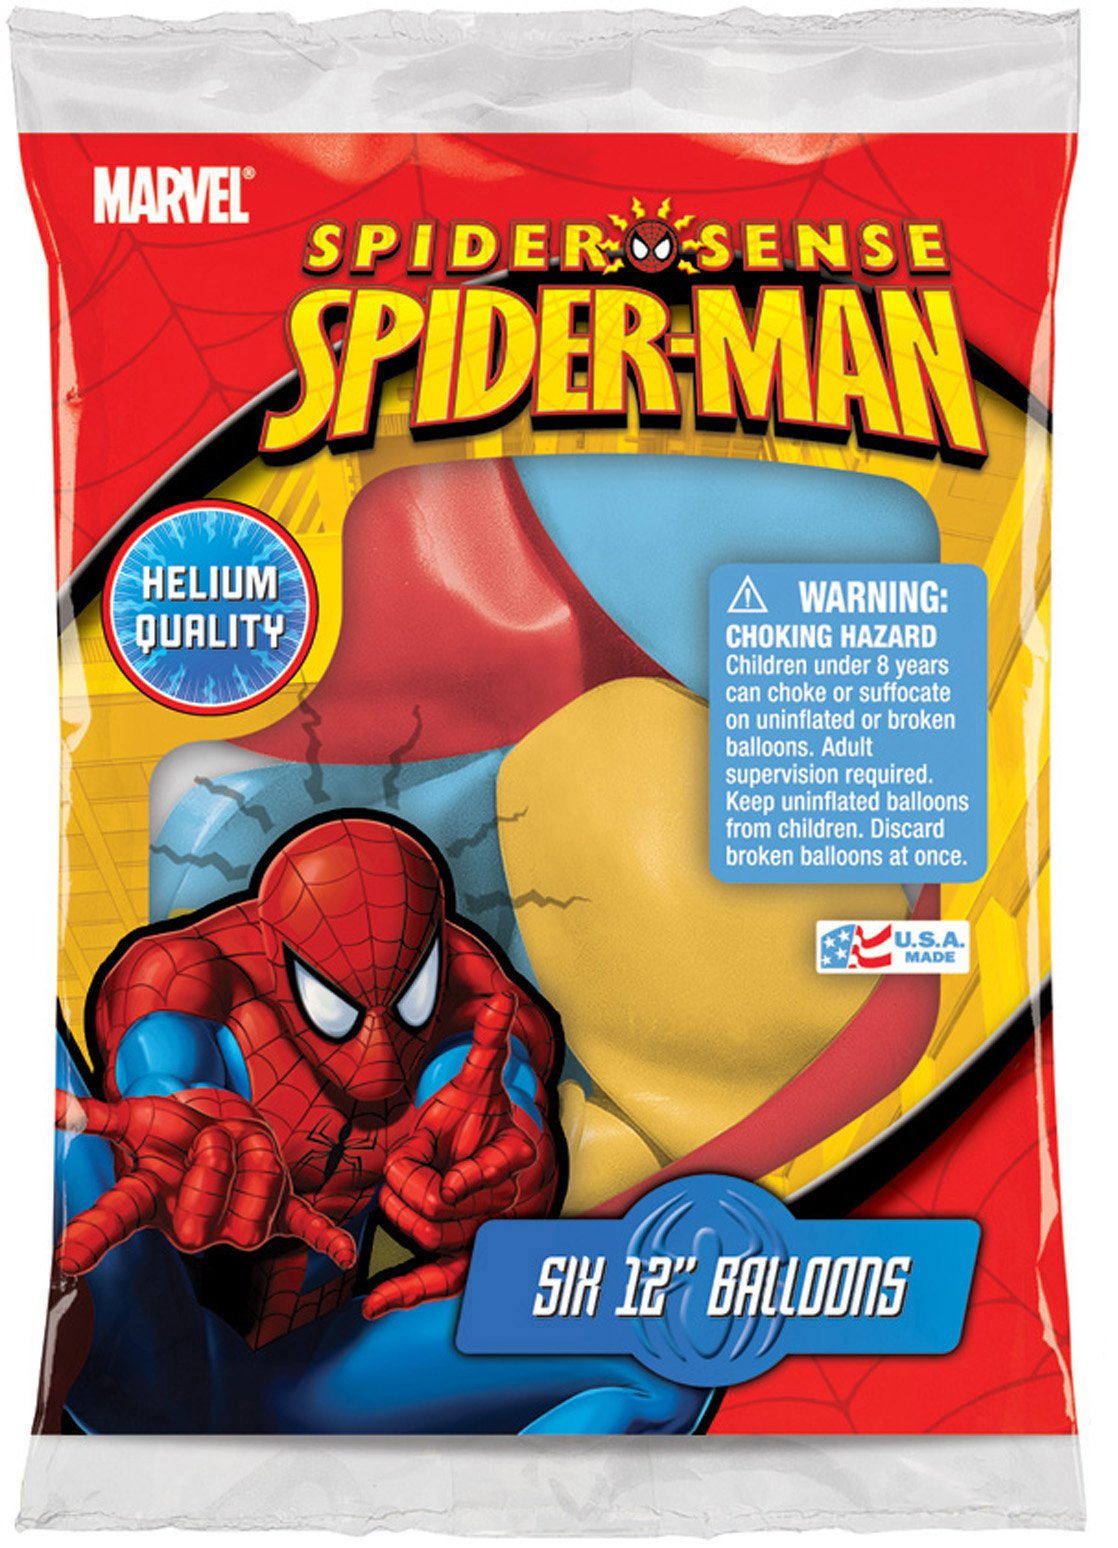 Spider-Man 12'' Assorted Color Balloons, 6 balloons per pack, Pack of 6